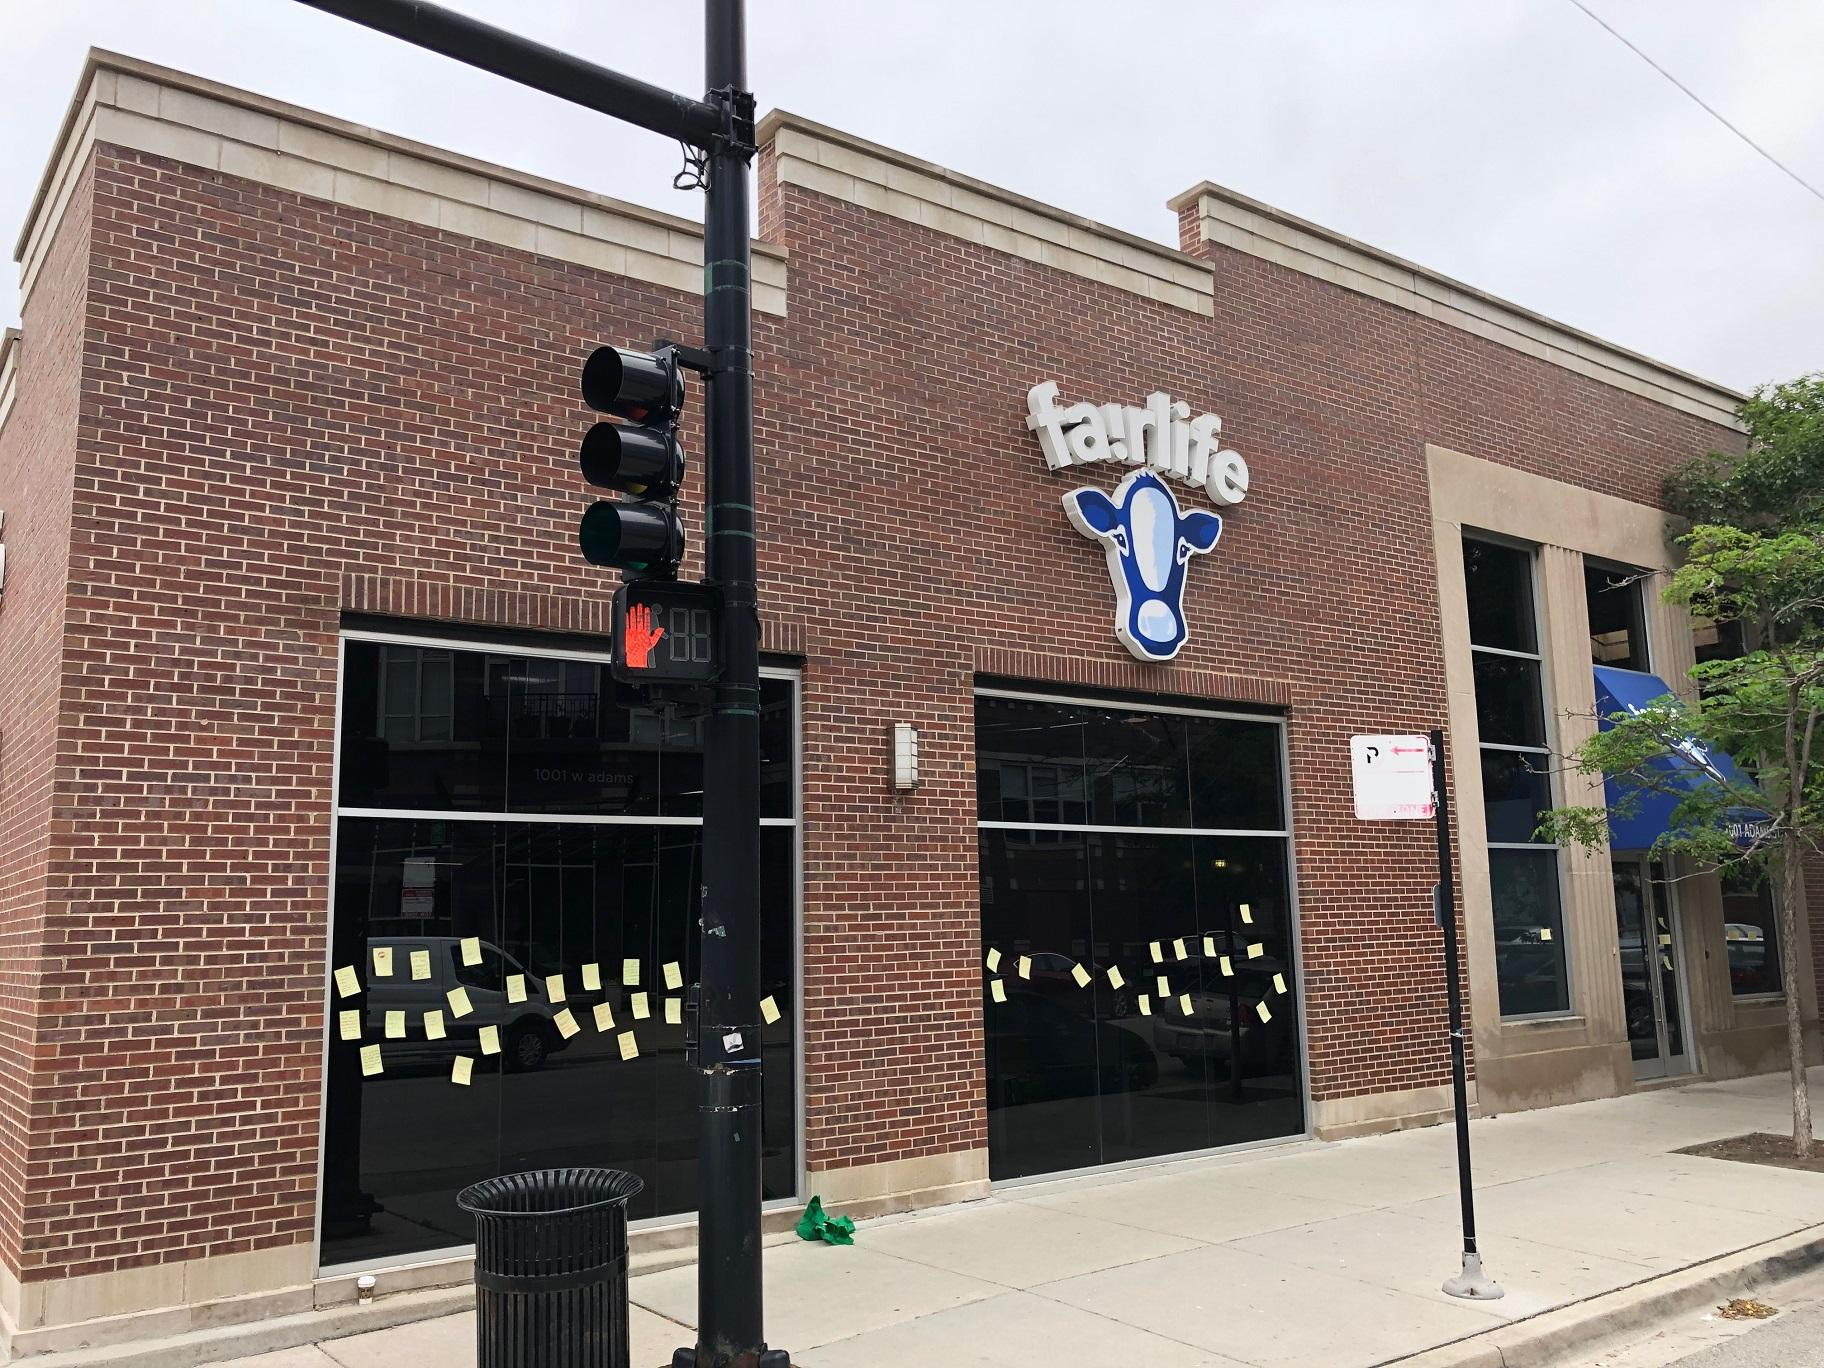 Fairlife's headquarters at 1001 W. Adams St. in Chicago (Alex Ruppenthal / WTTW News)